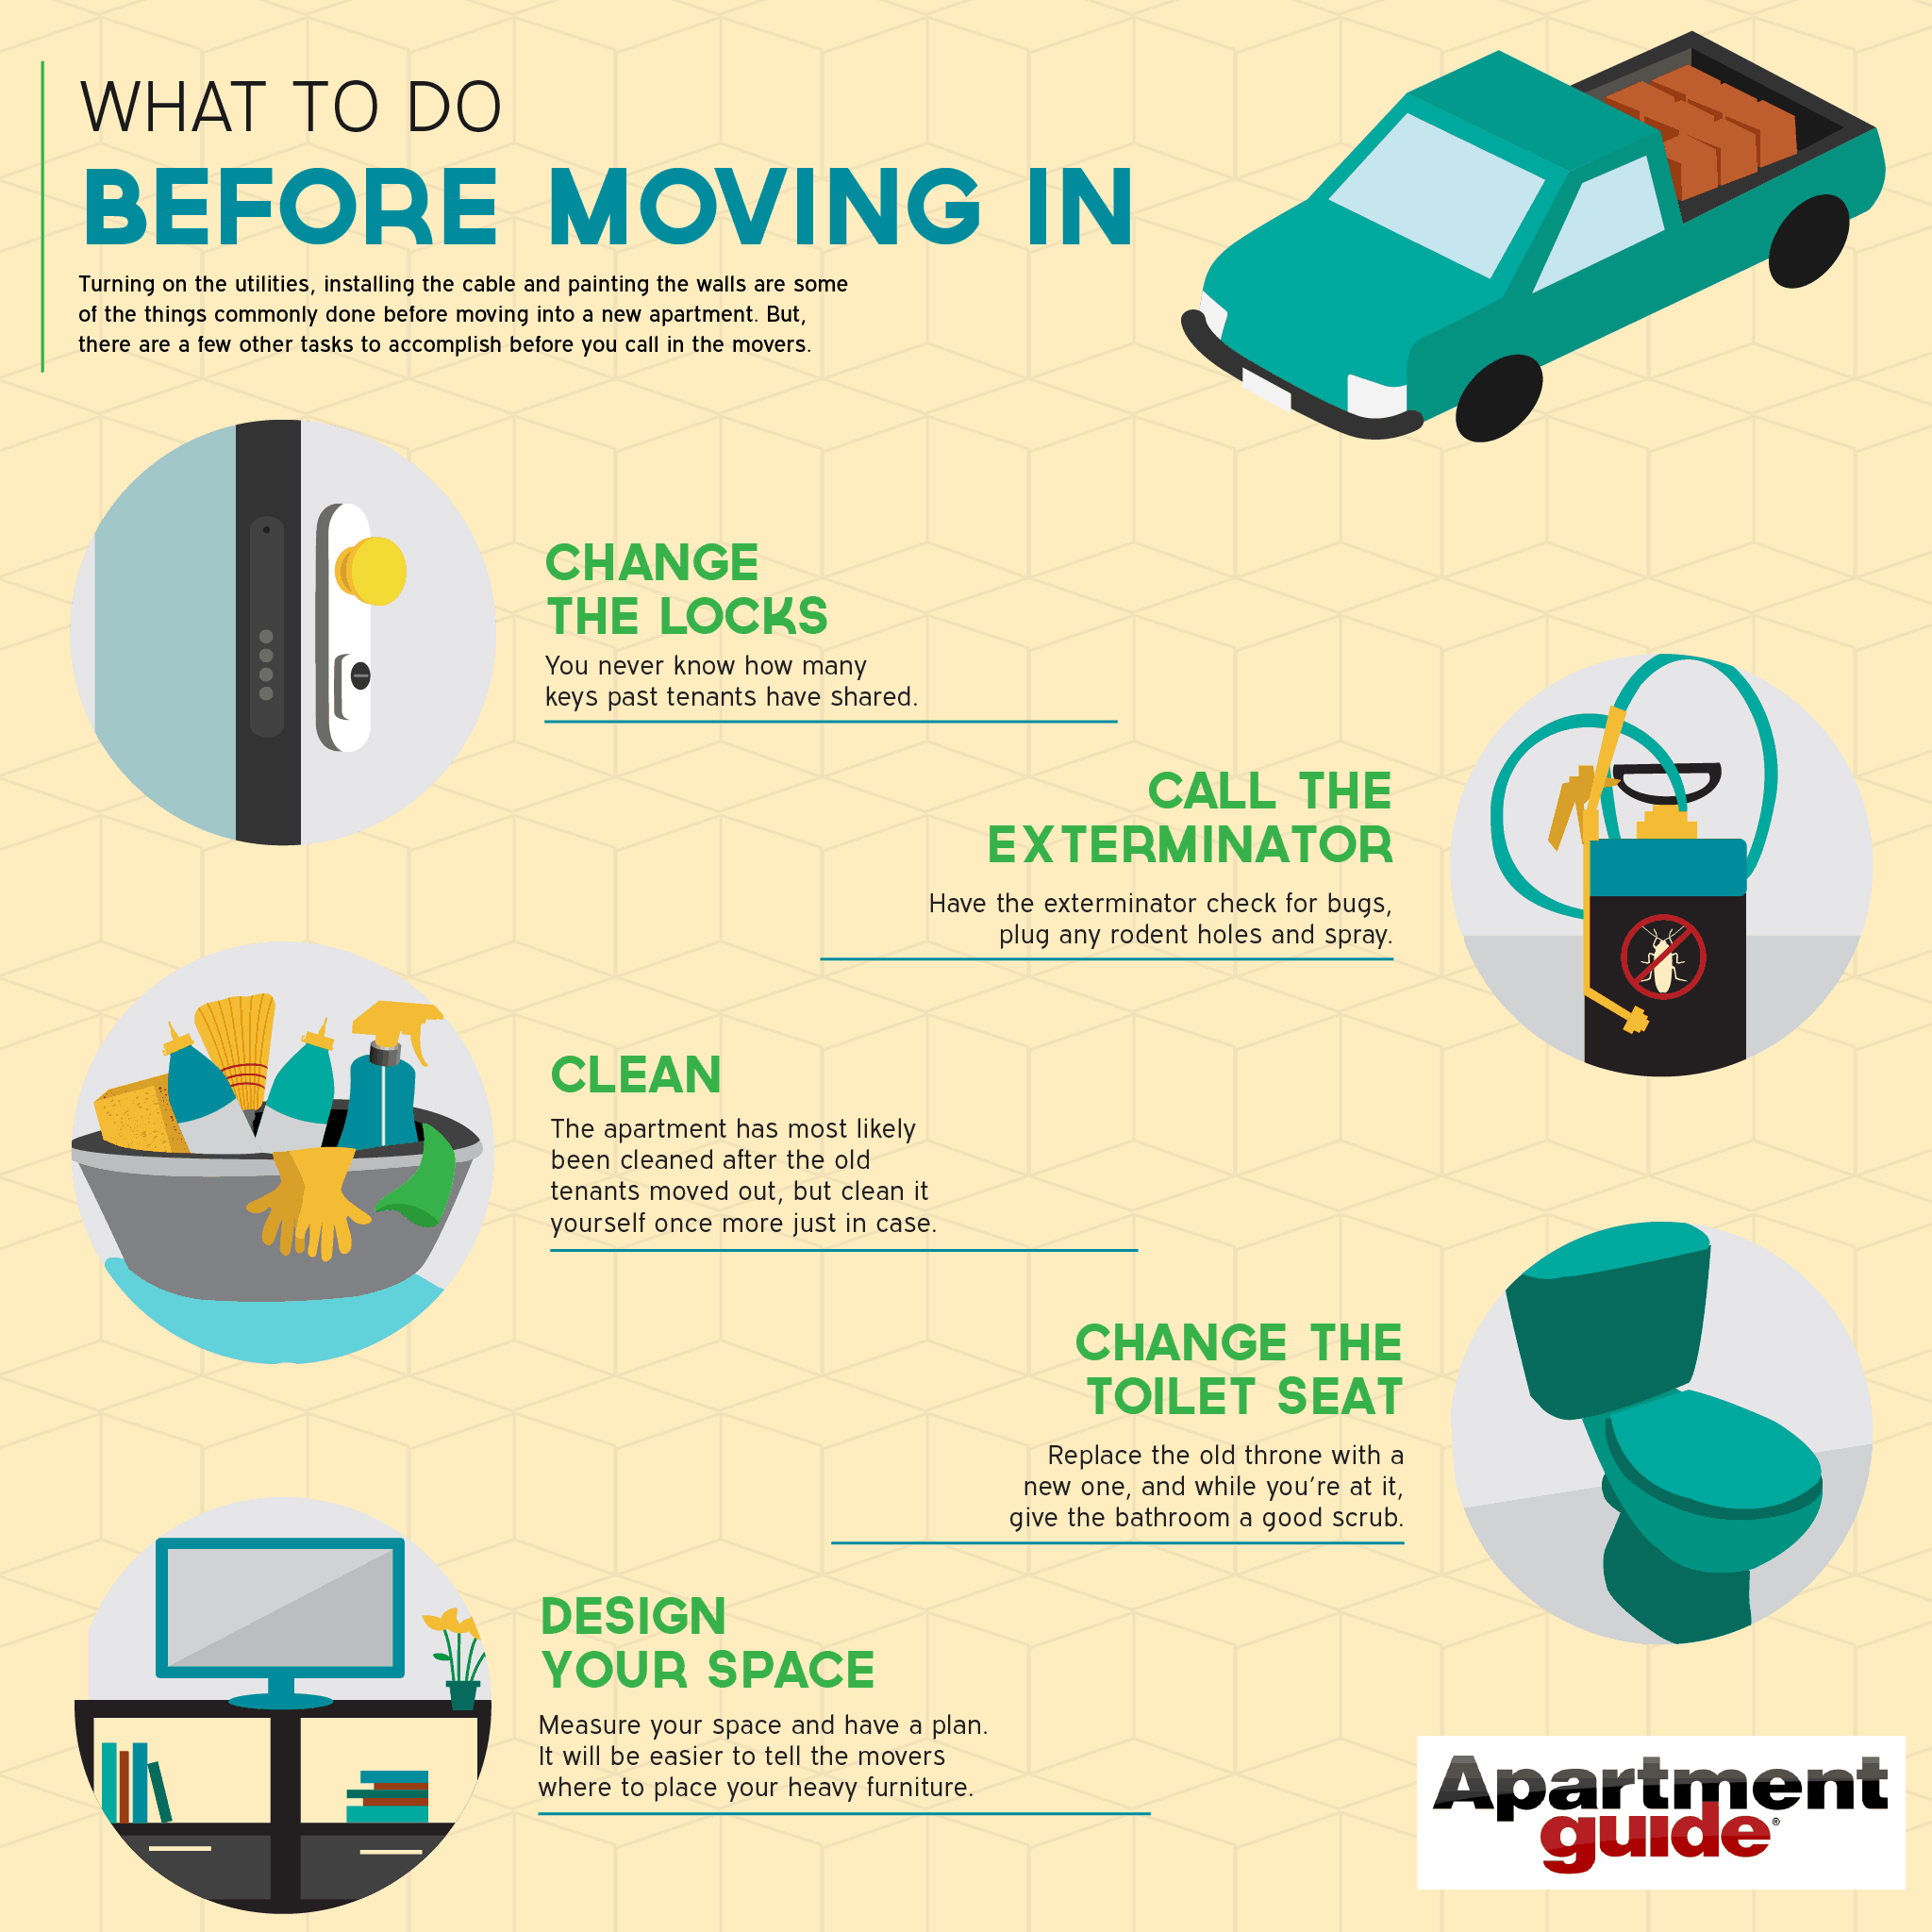 What To Do Before Moving In Infographic